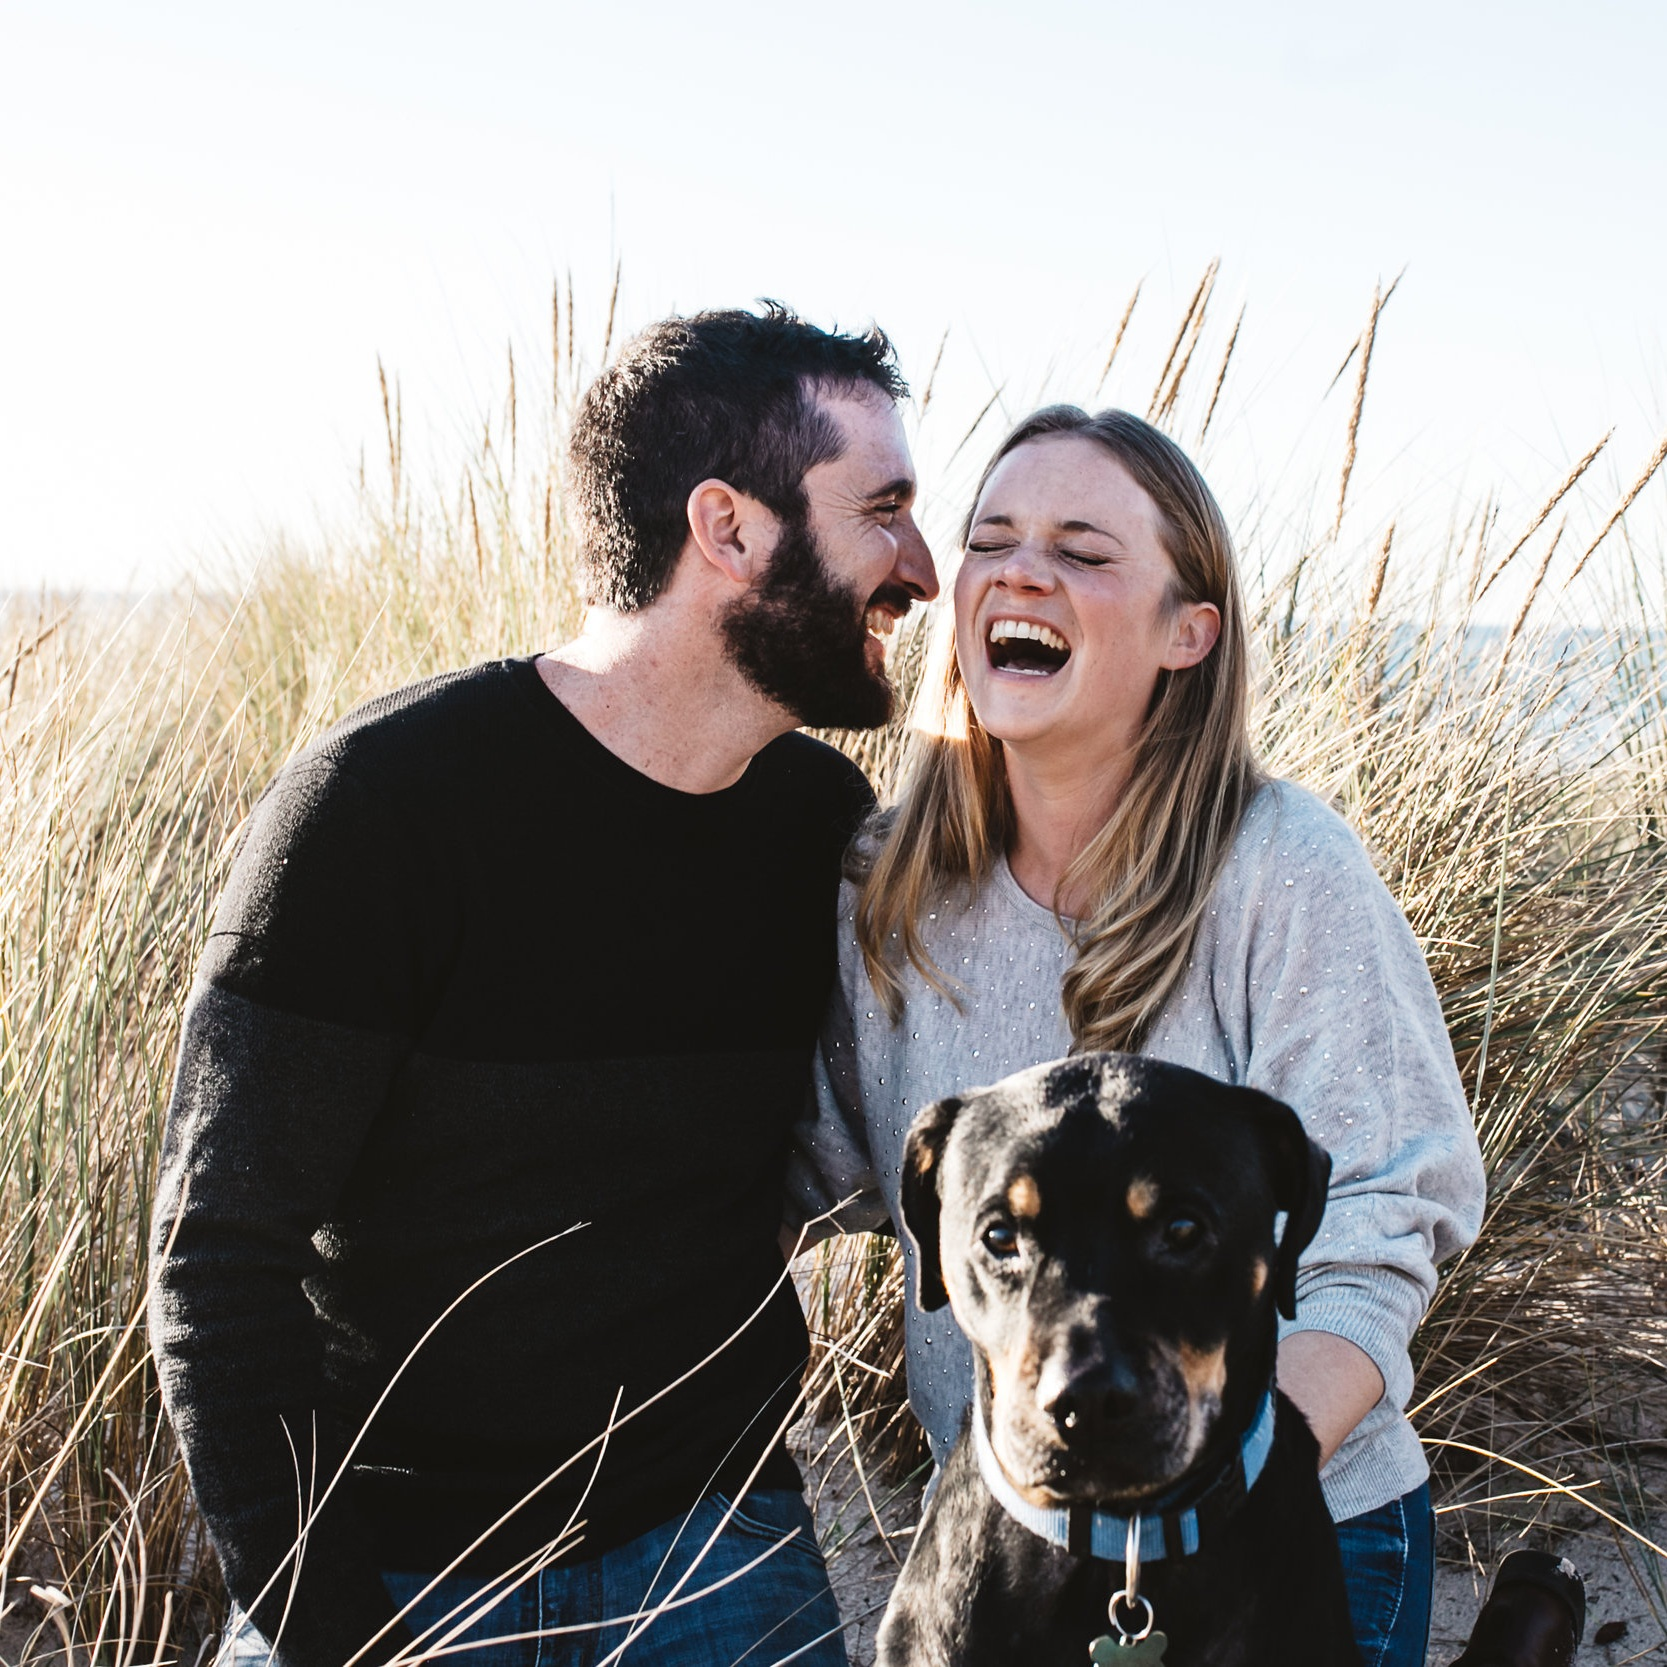 ENGAGEMENT SESSION - This is a great way to get to know your photographer, the session will be a lot more relaxed than your wedding day. If you decide that we are a good fit for your wedding day the session fee of your engagement shoot will be deducted from your wedding package.